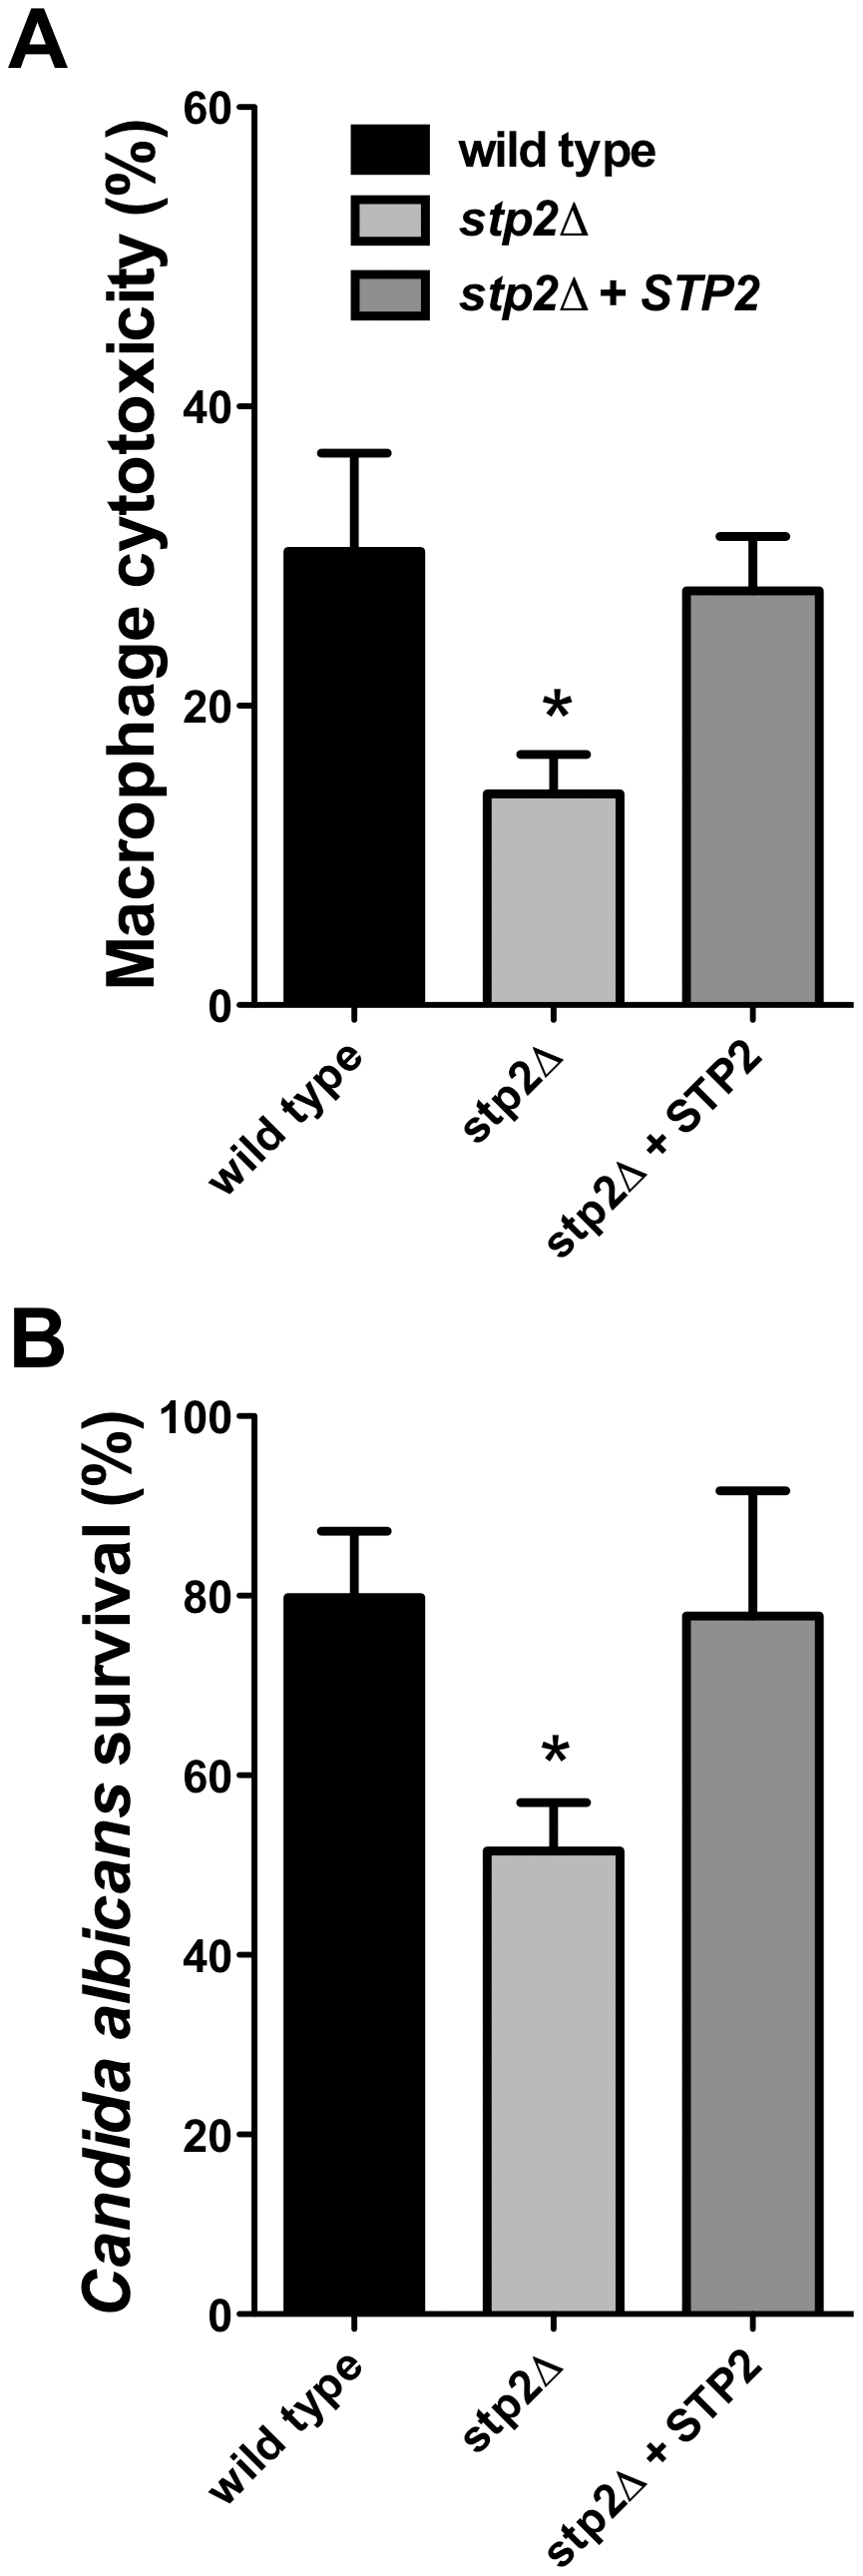 Cells lacking <i>STP2</i> show reduced survival during phagocytosis and reduced capacity to kill RAW264.7 macrophages.